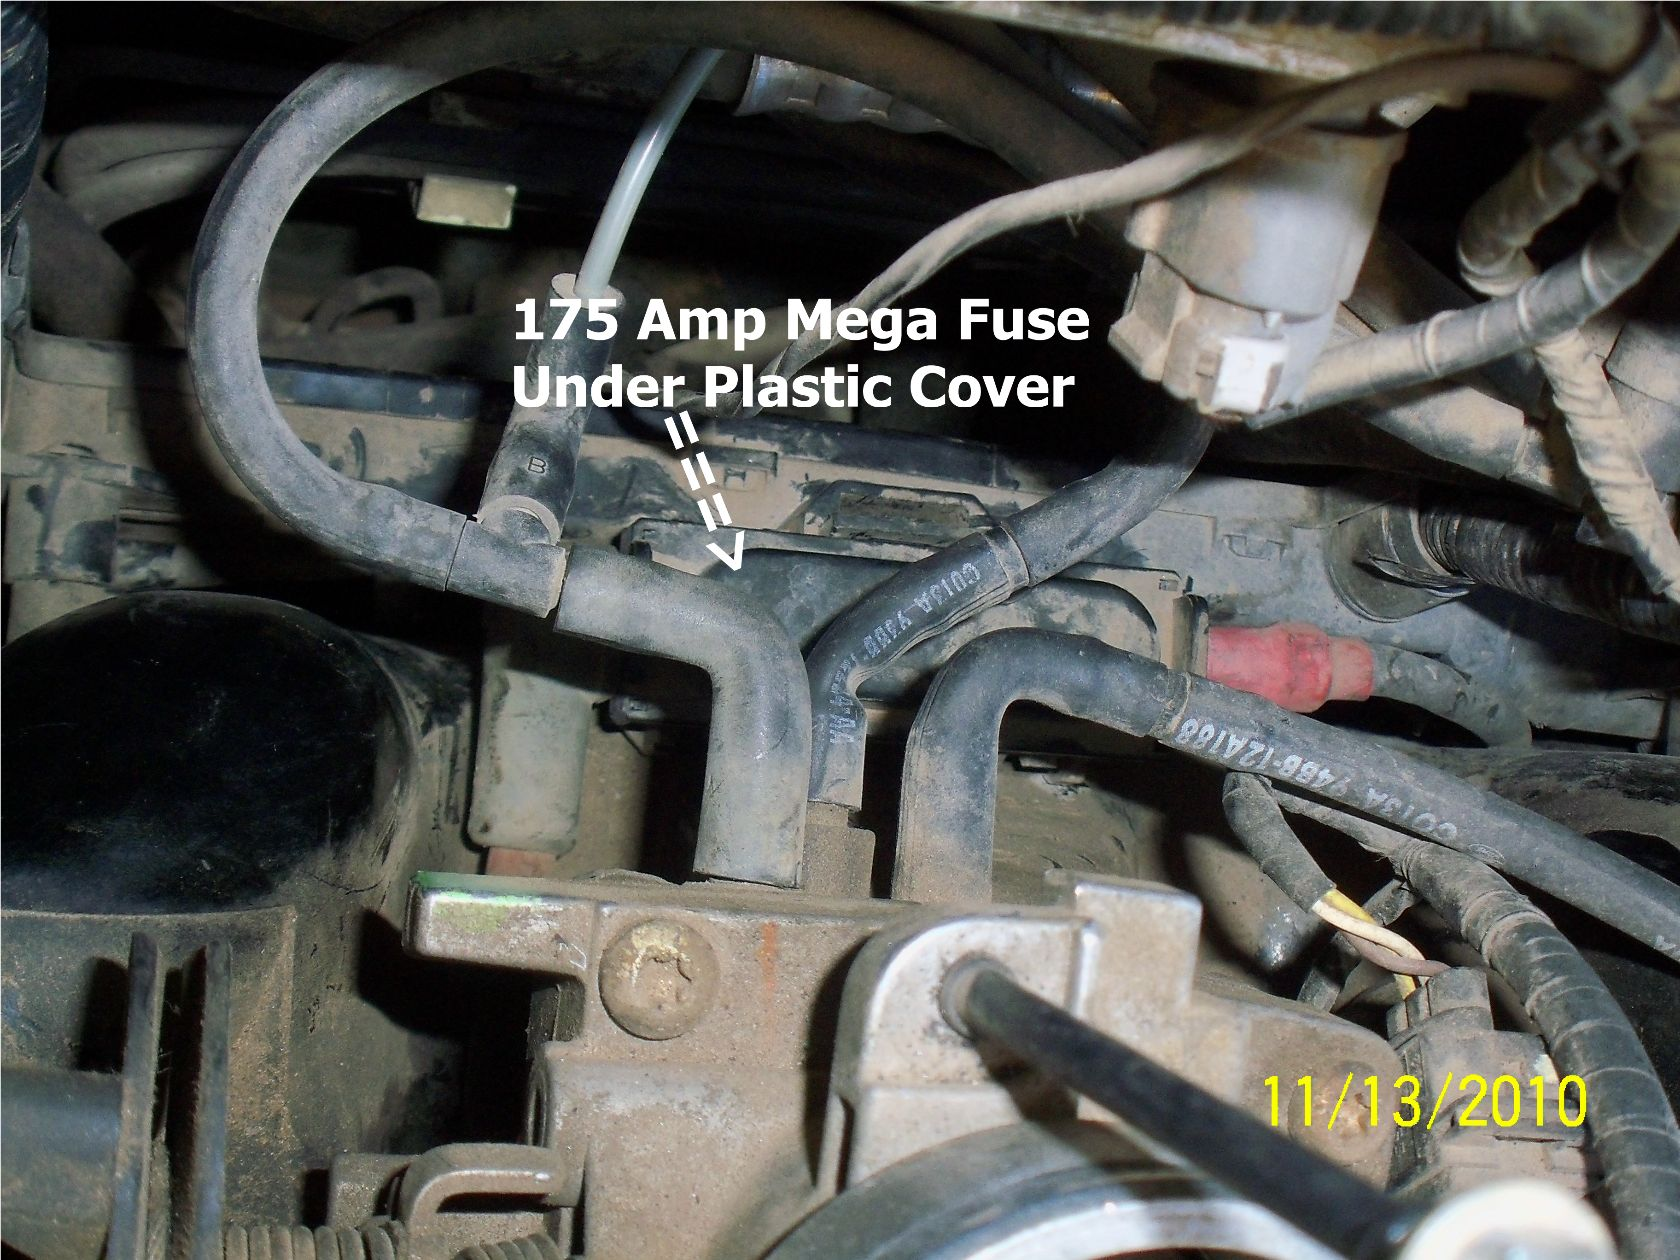 87 Ford F150 Fuse Box Starting Know About Wiring Diagram Battery Ranger 1996 Contour 2 0l Replaced Alternator But